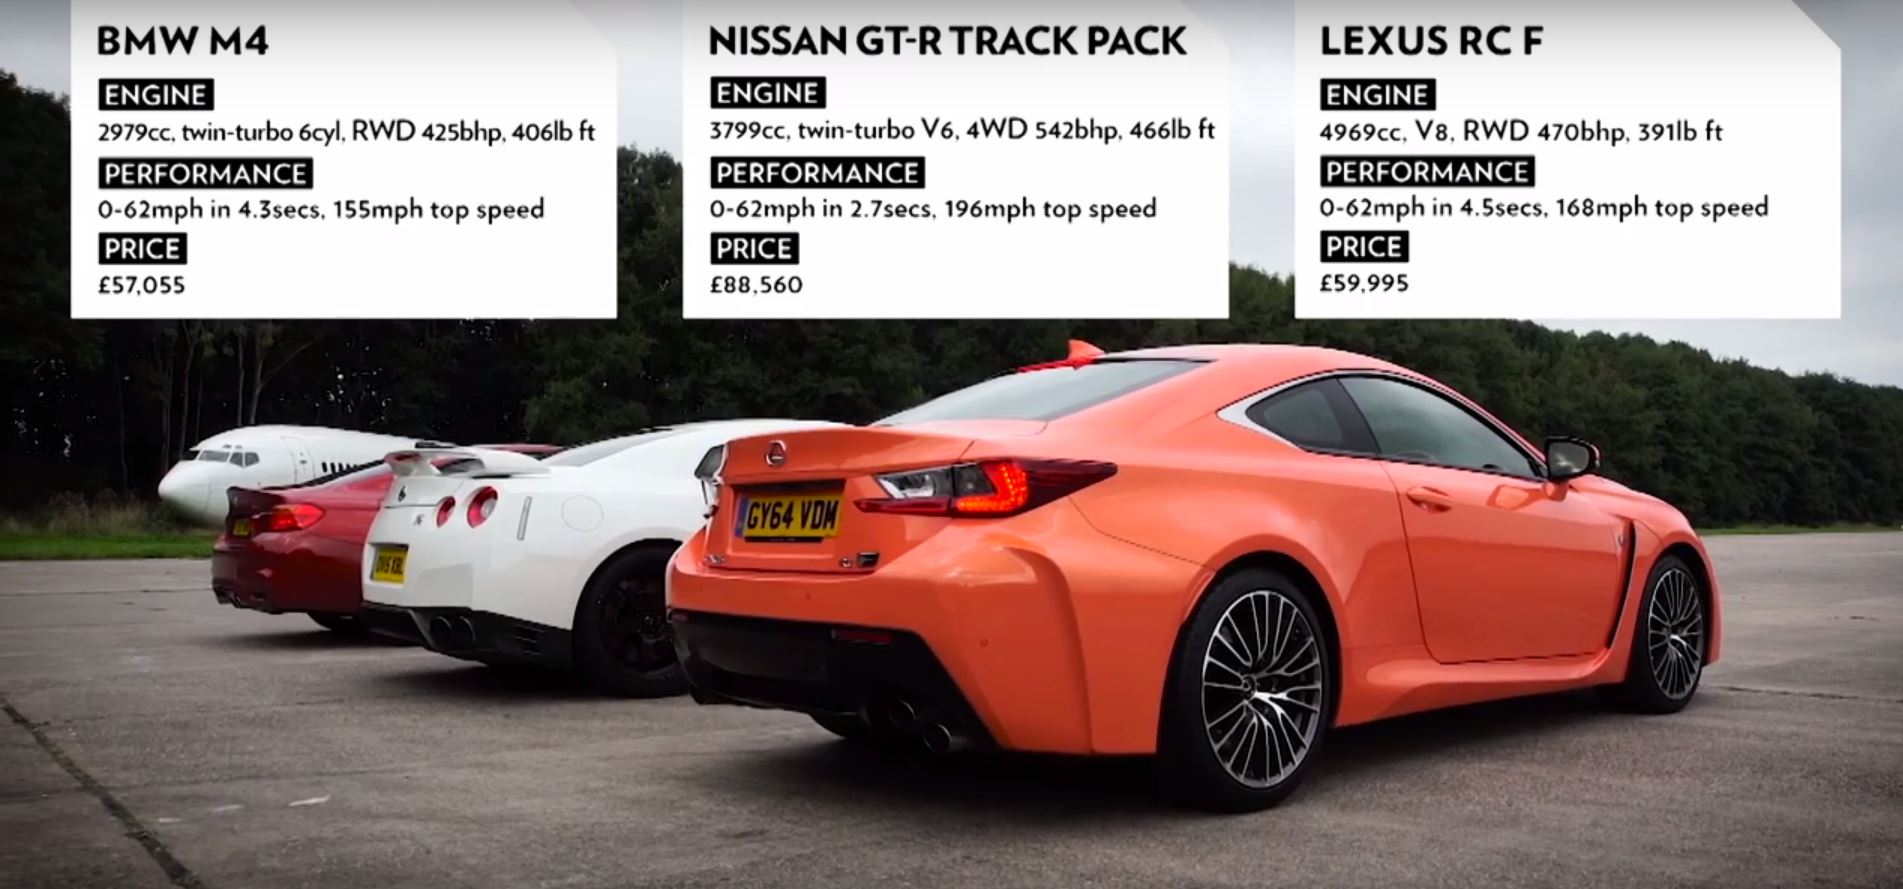 Drag Race Between Bmw M4 Nissan Gt R And Lexus Rc F Is Not Close